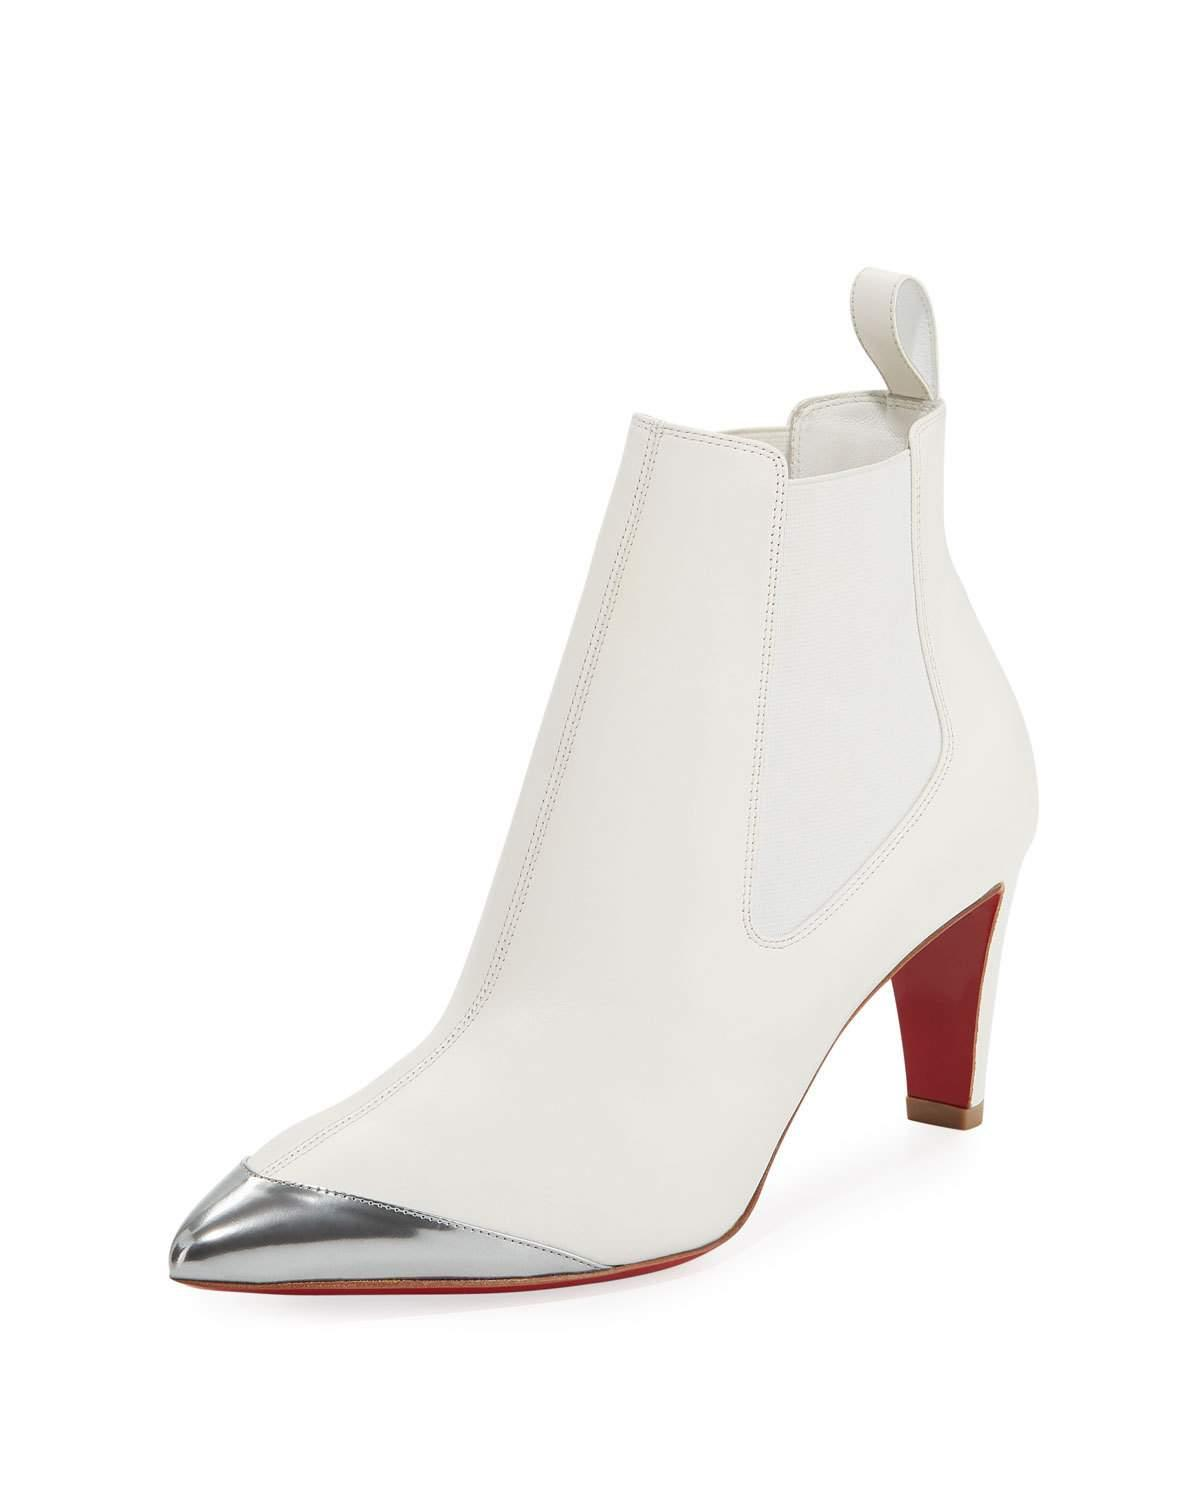 buy popular 3a687 df2e8 Superchen Leather Red Sole Booties in White/Silver